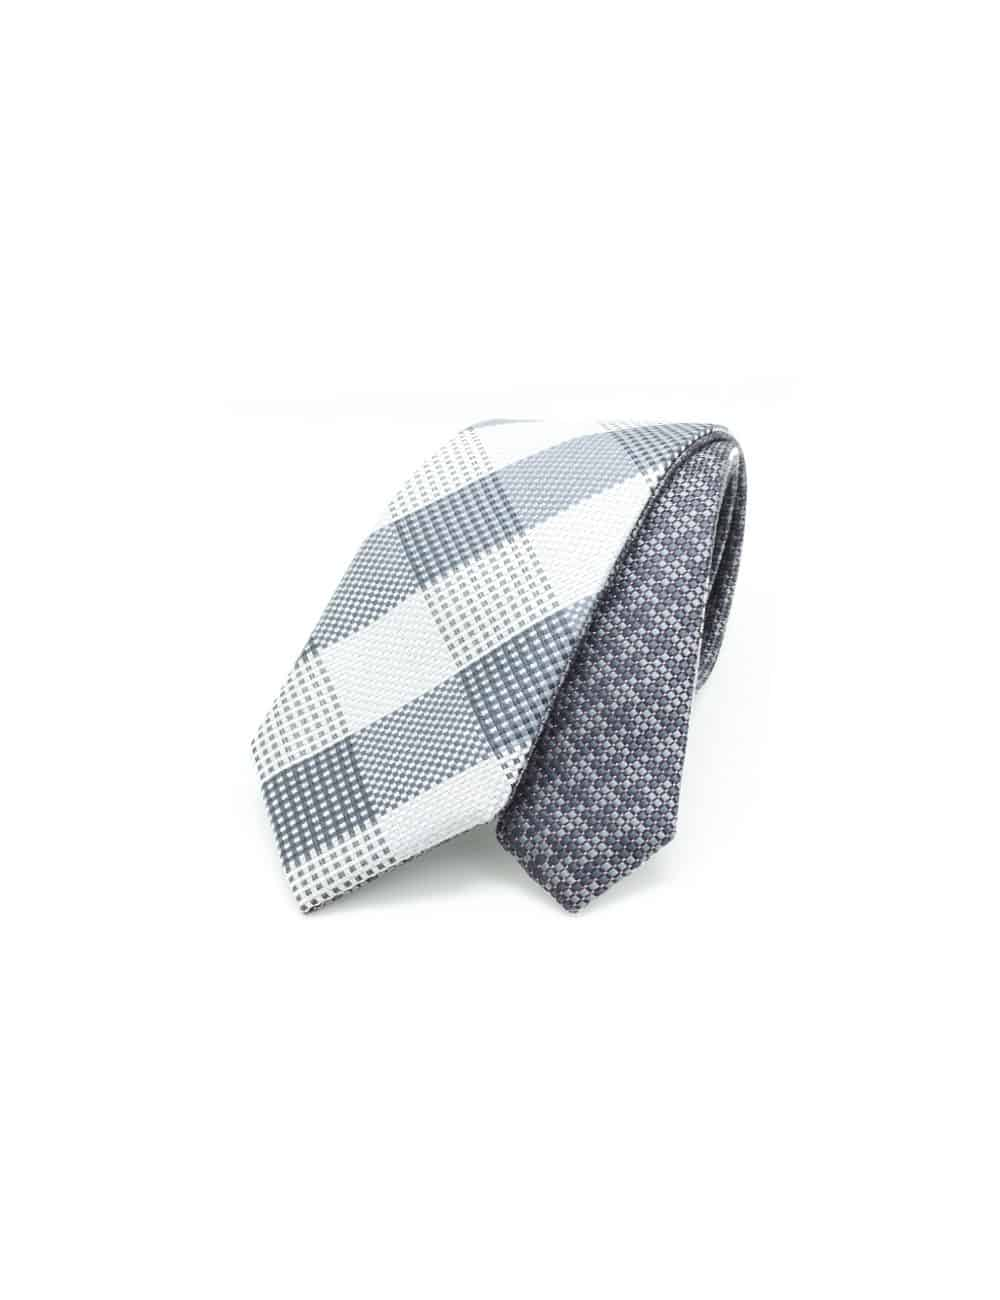 Grey Checks Spill Resist Woven Reversible Necktie RNT10.9